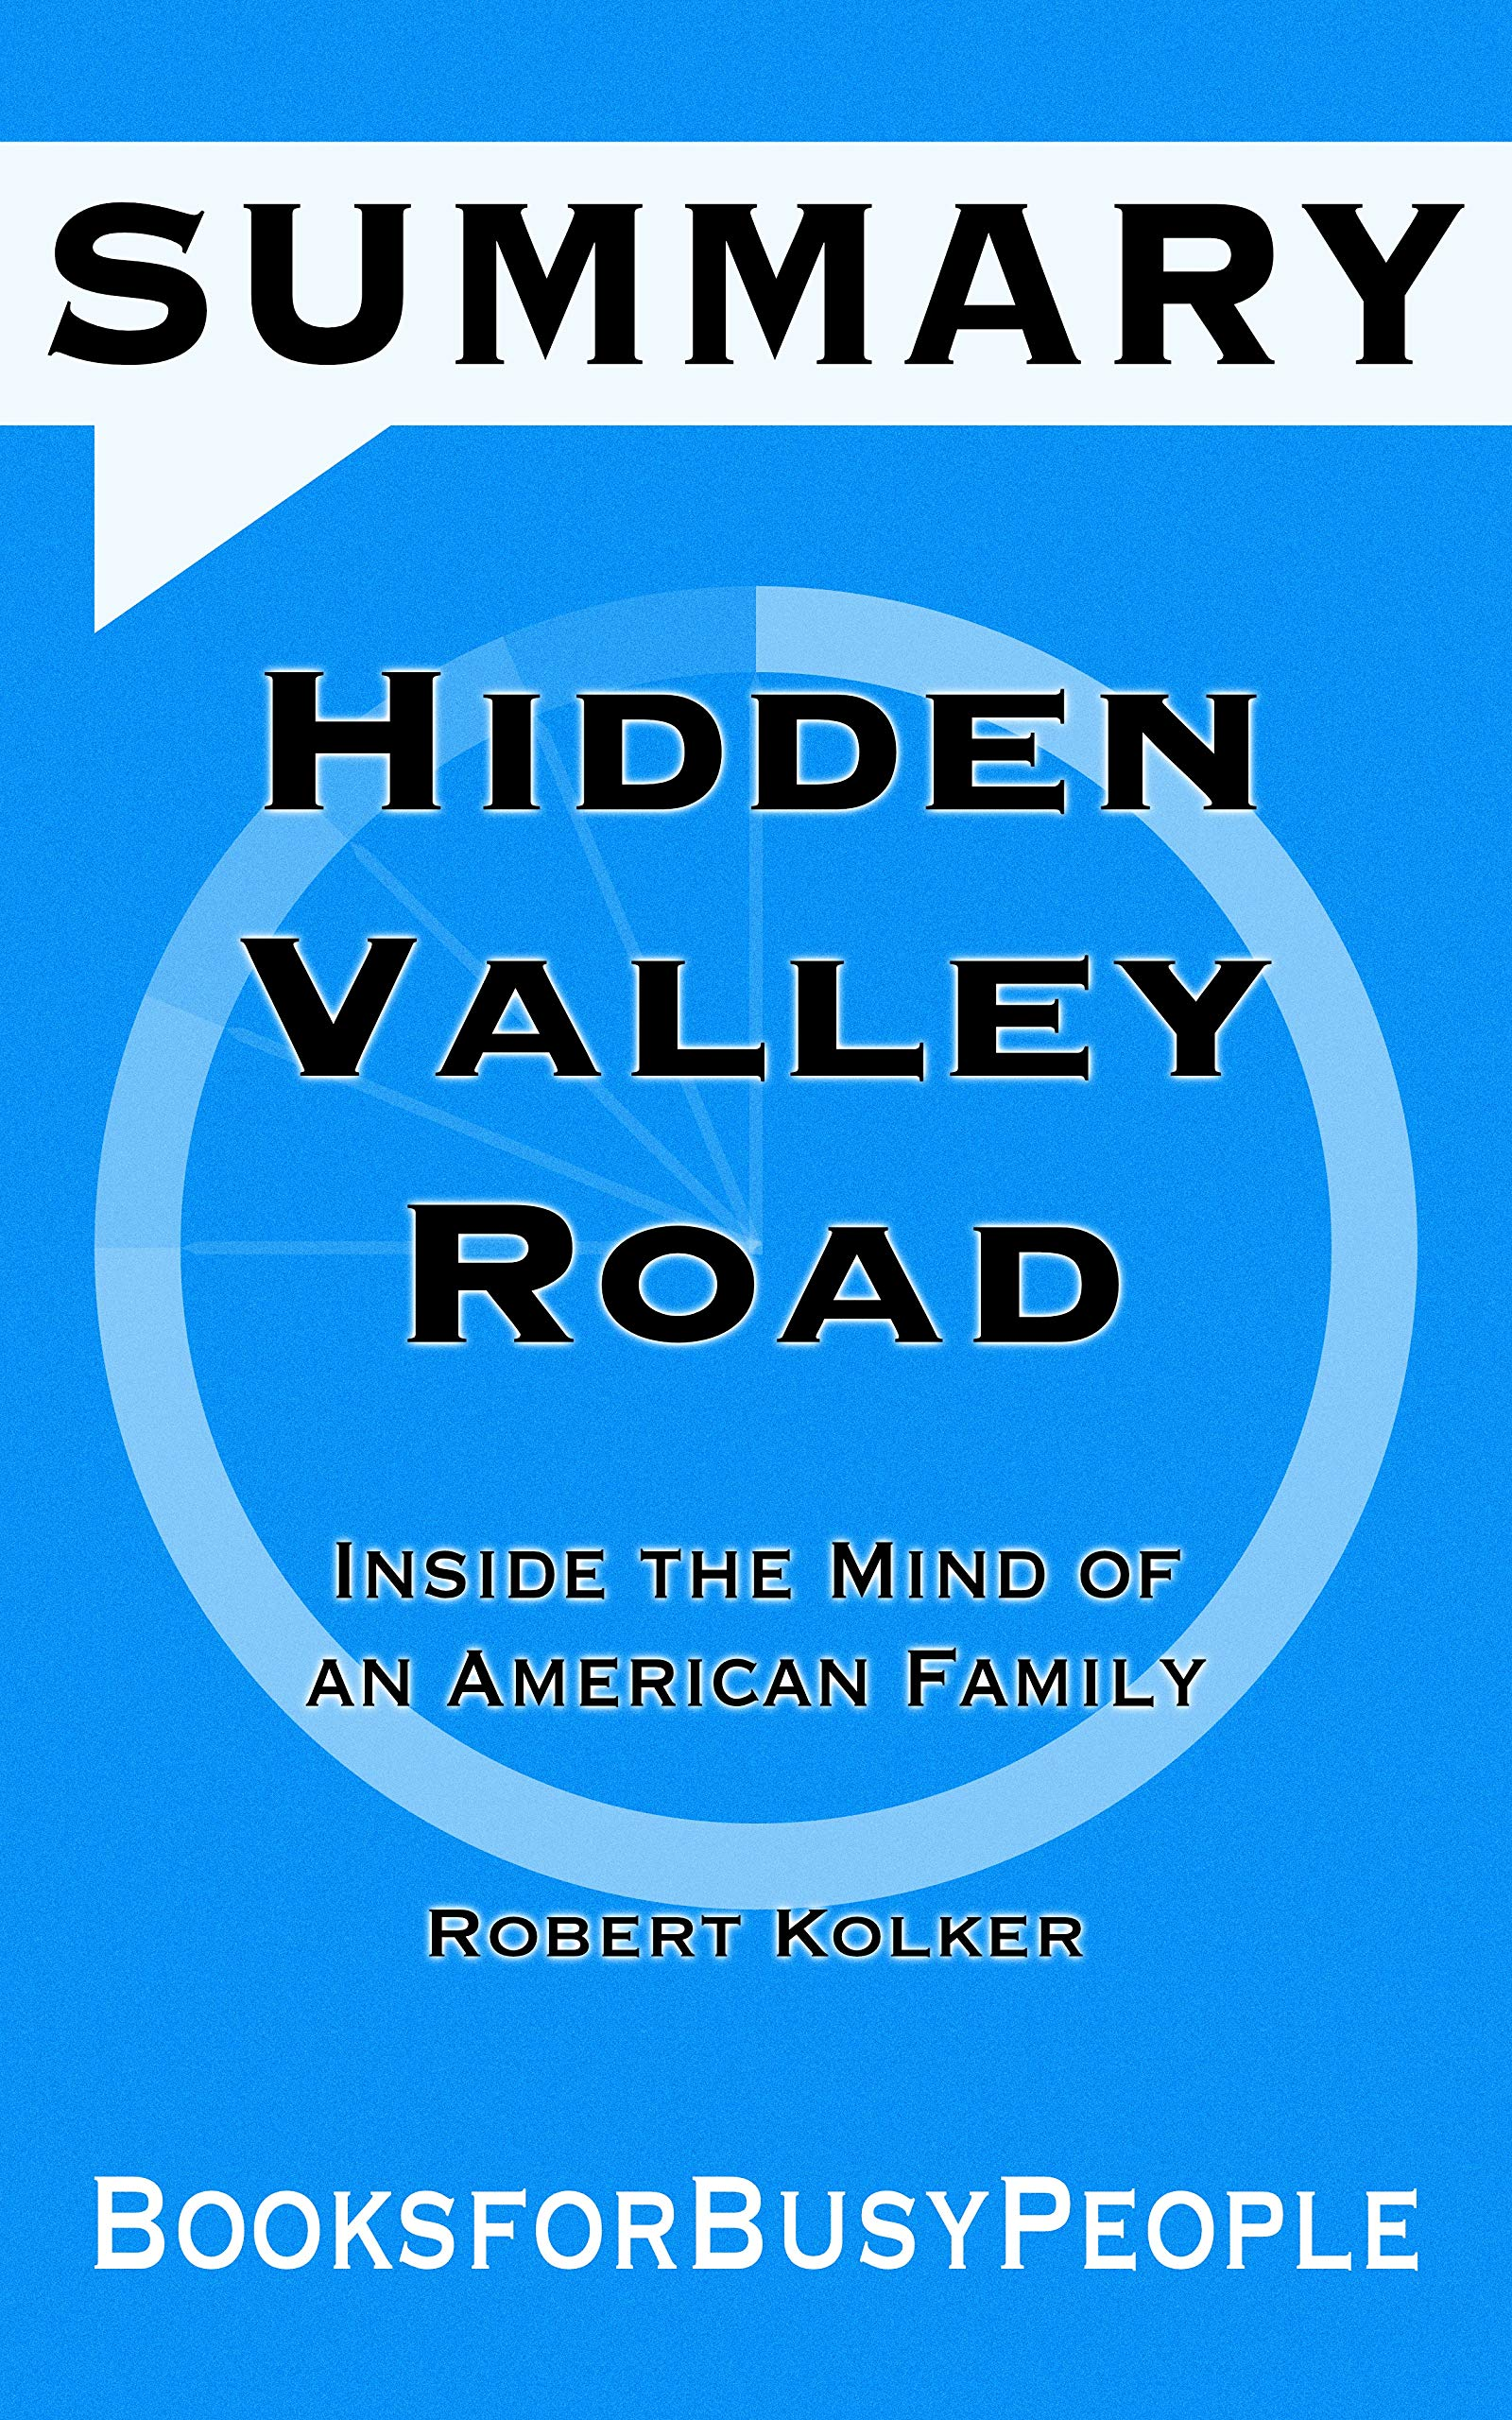 SUMMARY of Hidden Valley Road: Inside the Mind of an American Family